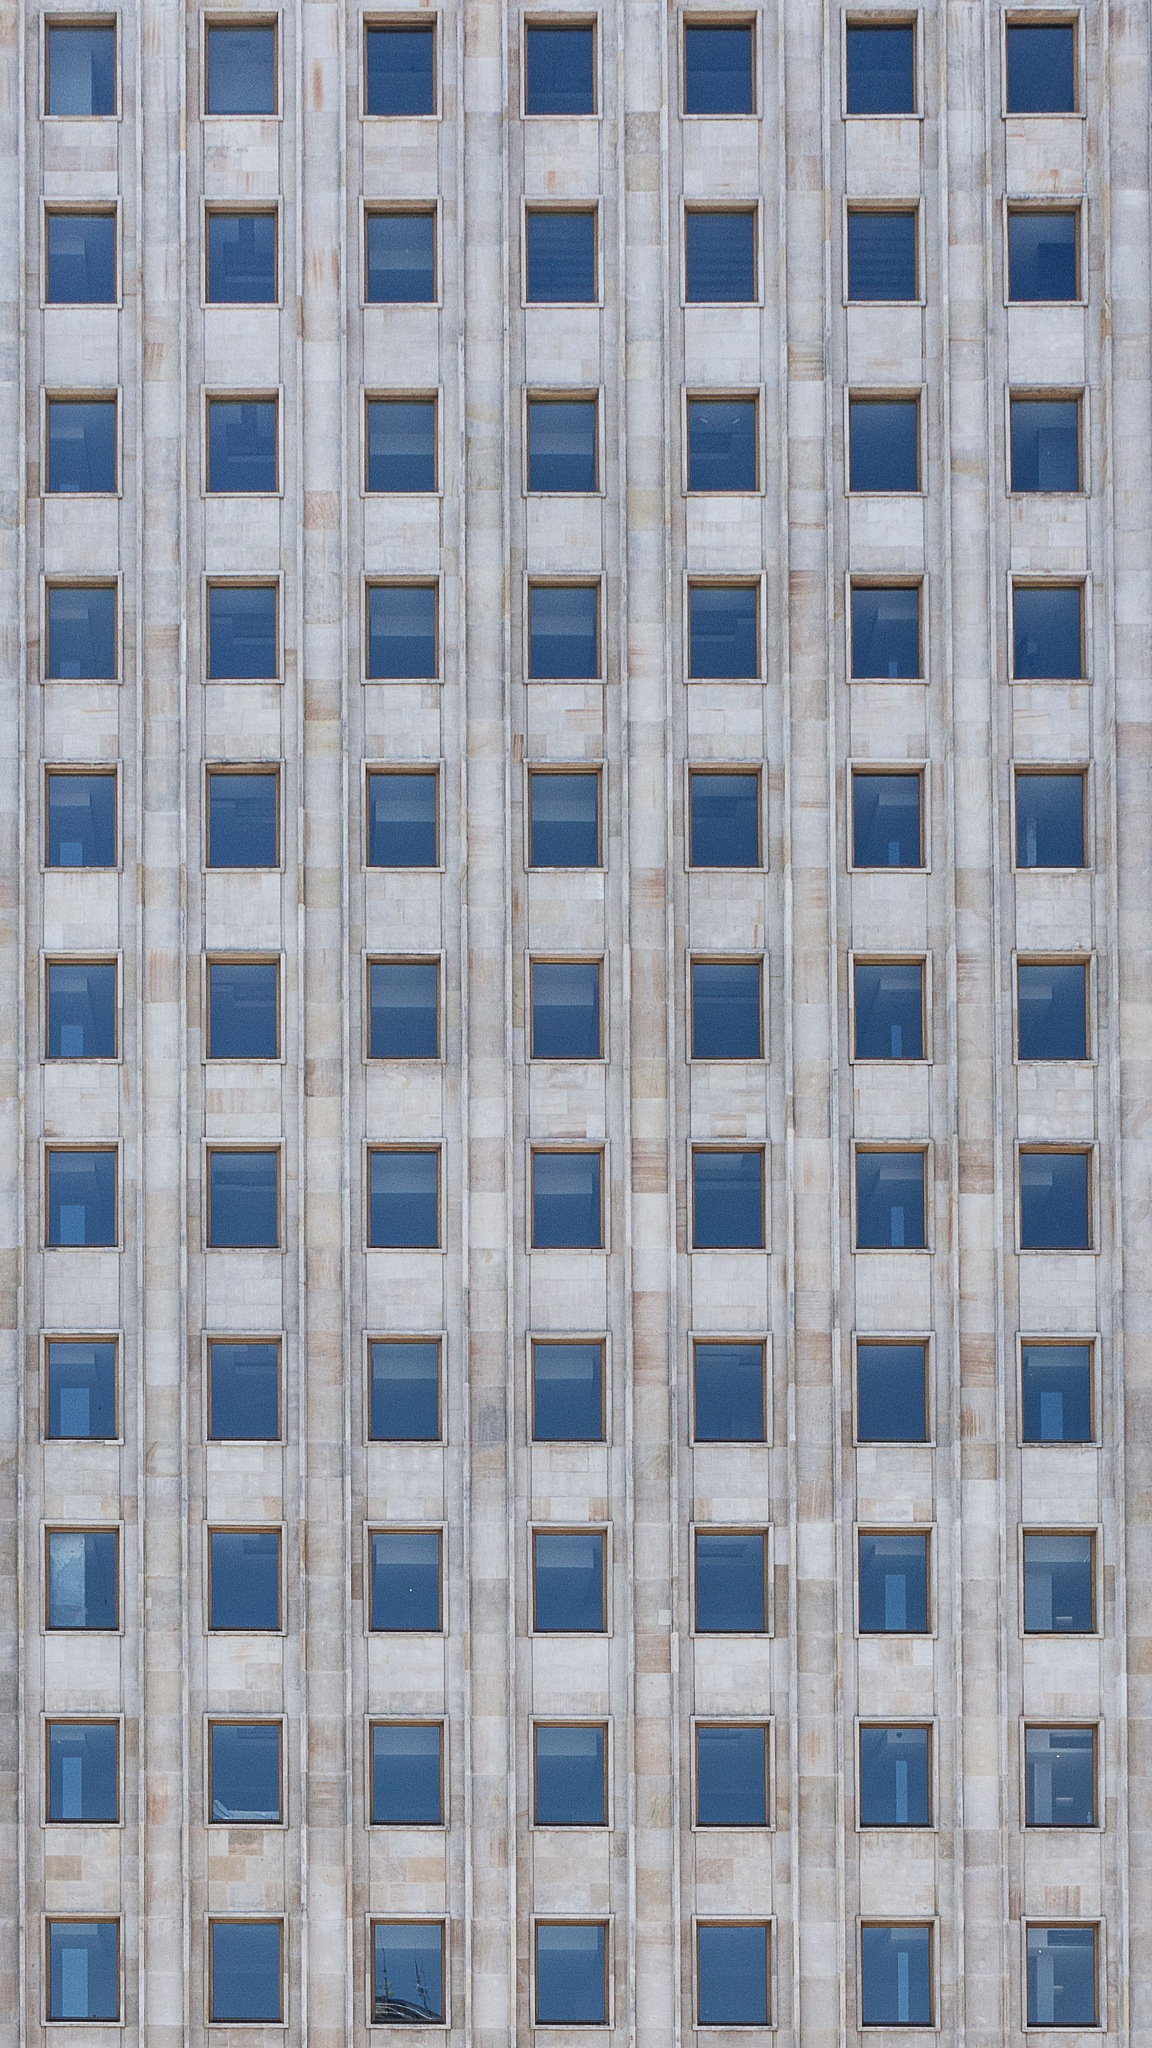 a short story about the effect of facade renovation by ignacy50